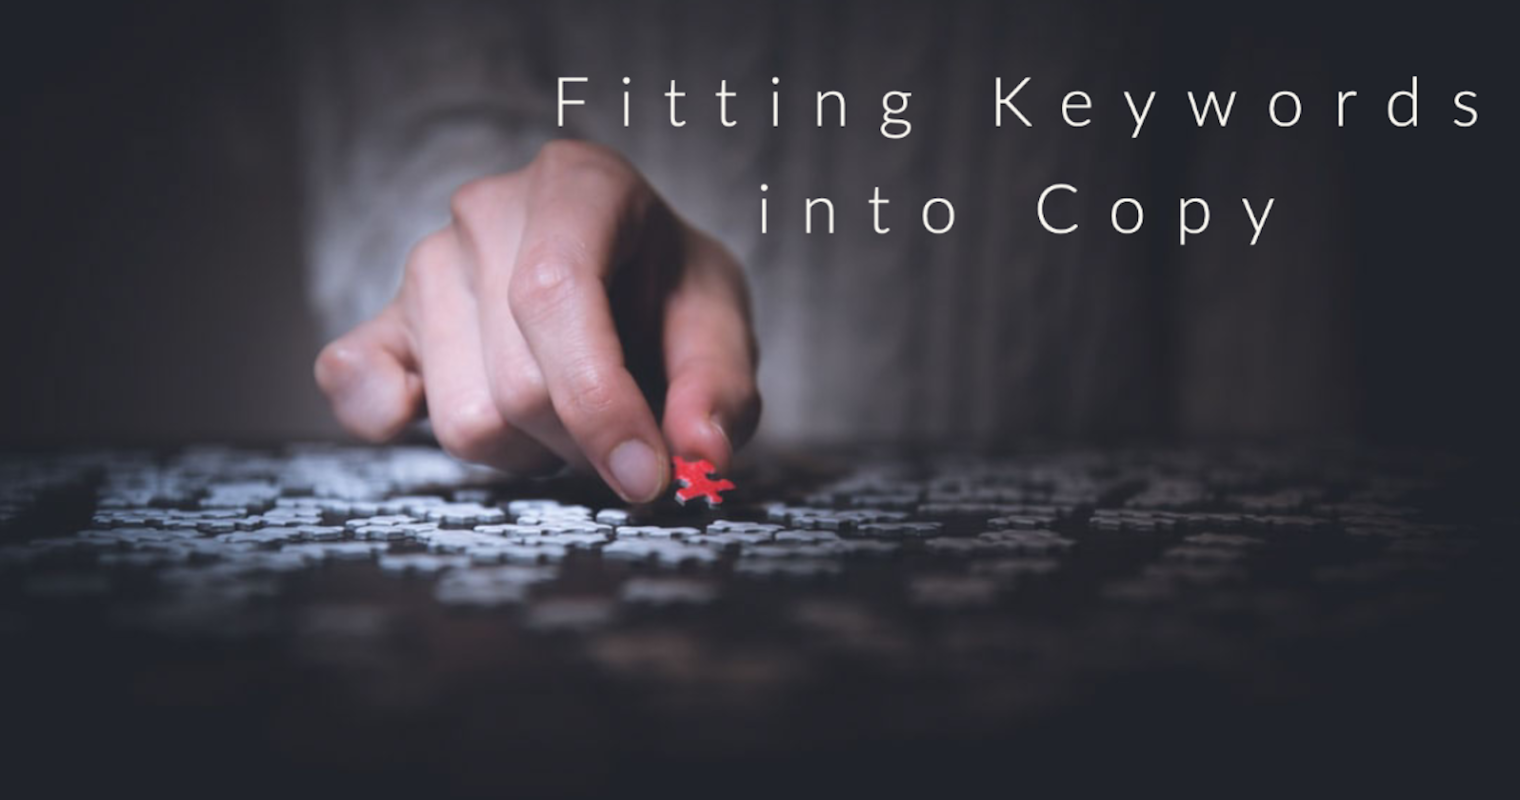 How to Add Keywords in Your Copy While Making Google Love You